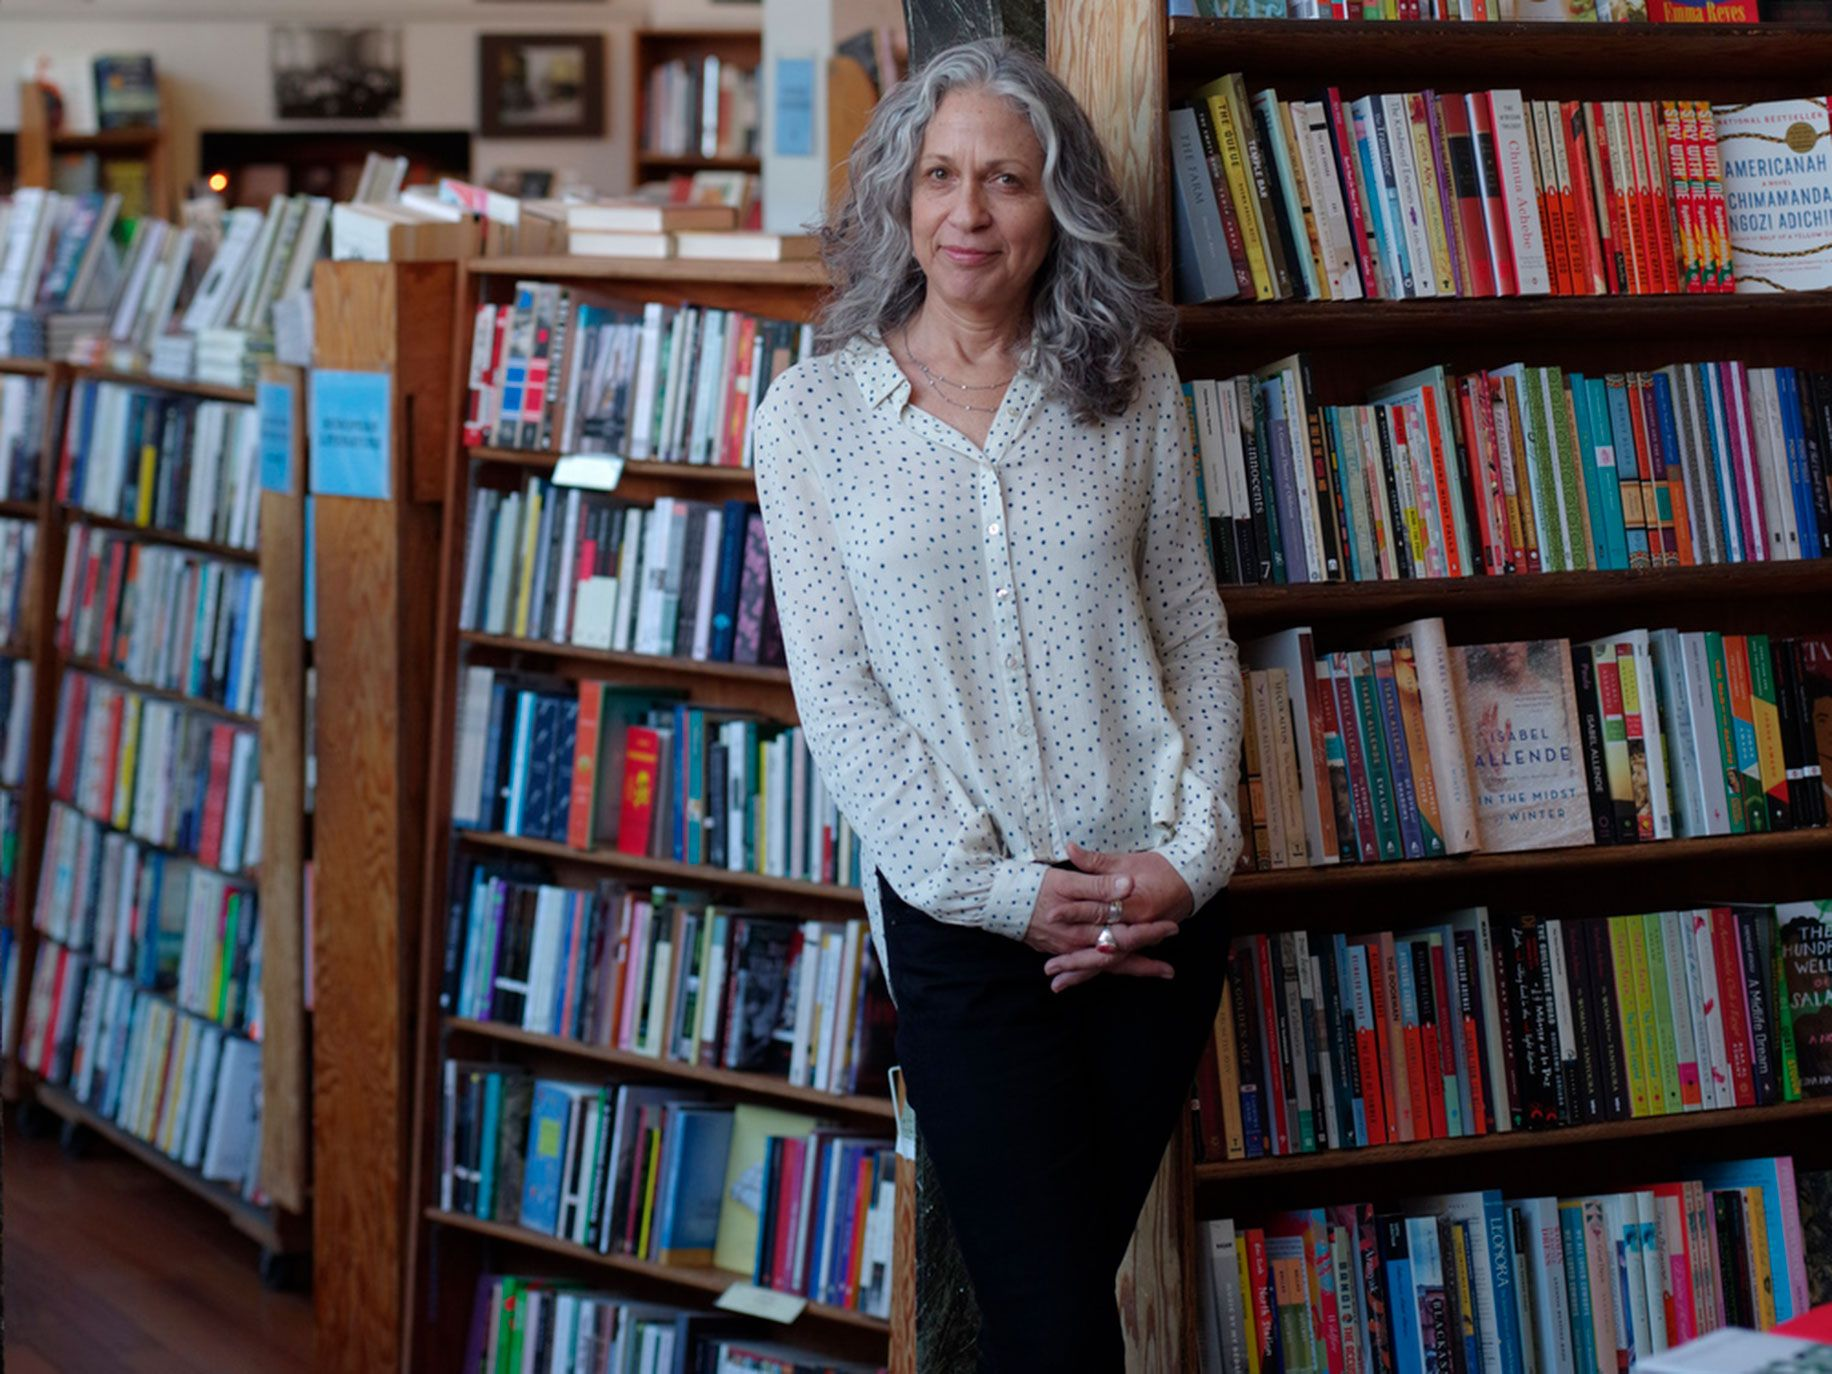 City Lights publisher and executive director Elaine Katzenberger believes there is still a vibrant underground culture in San Francisco, even if many of the city's writers are moving to the East Bay.